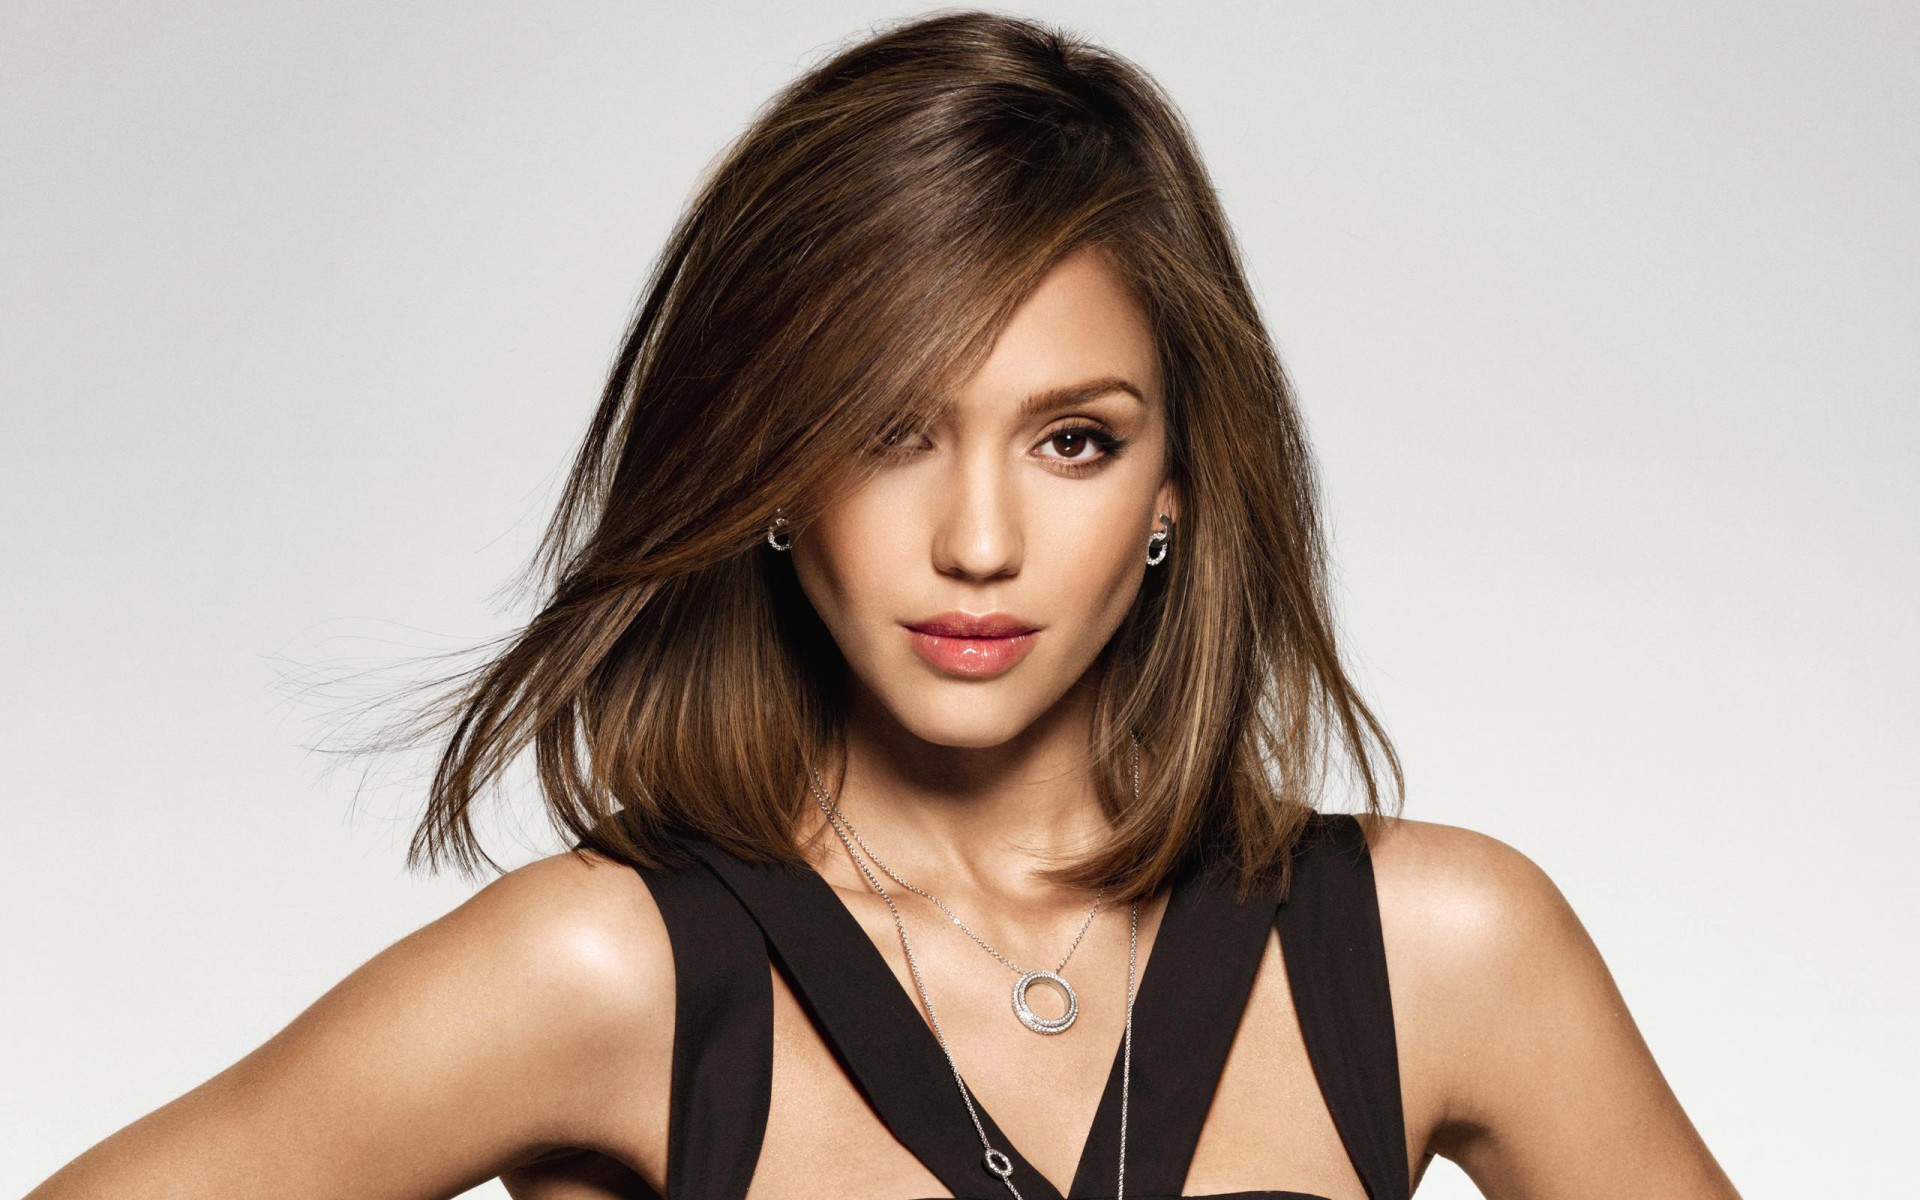 Jessica Alba Wallpapers 12-4823